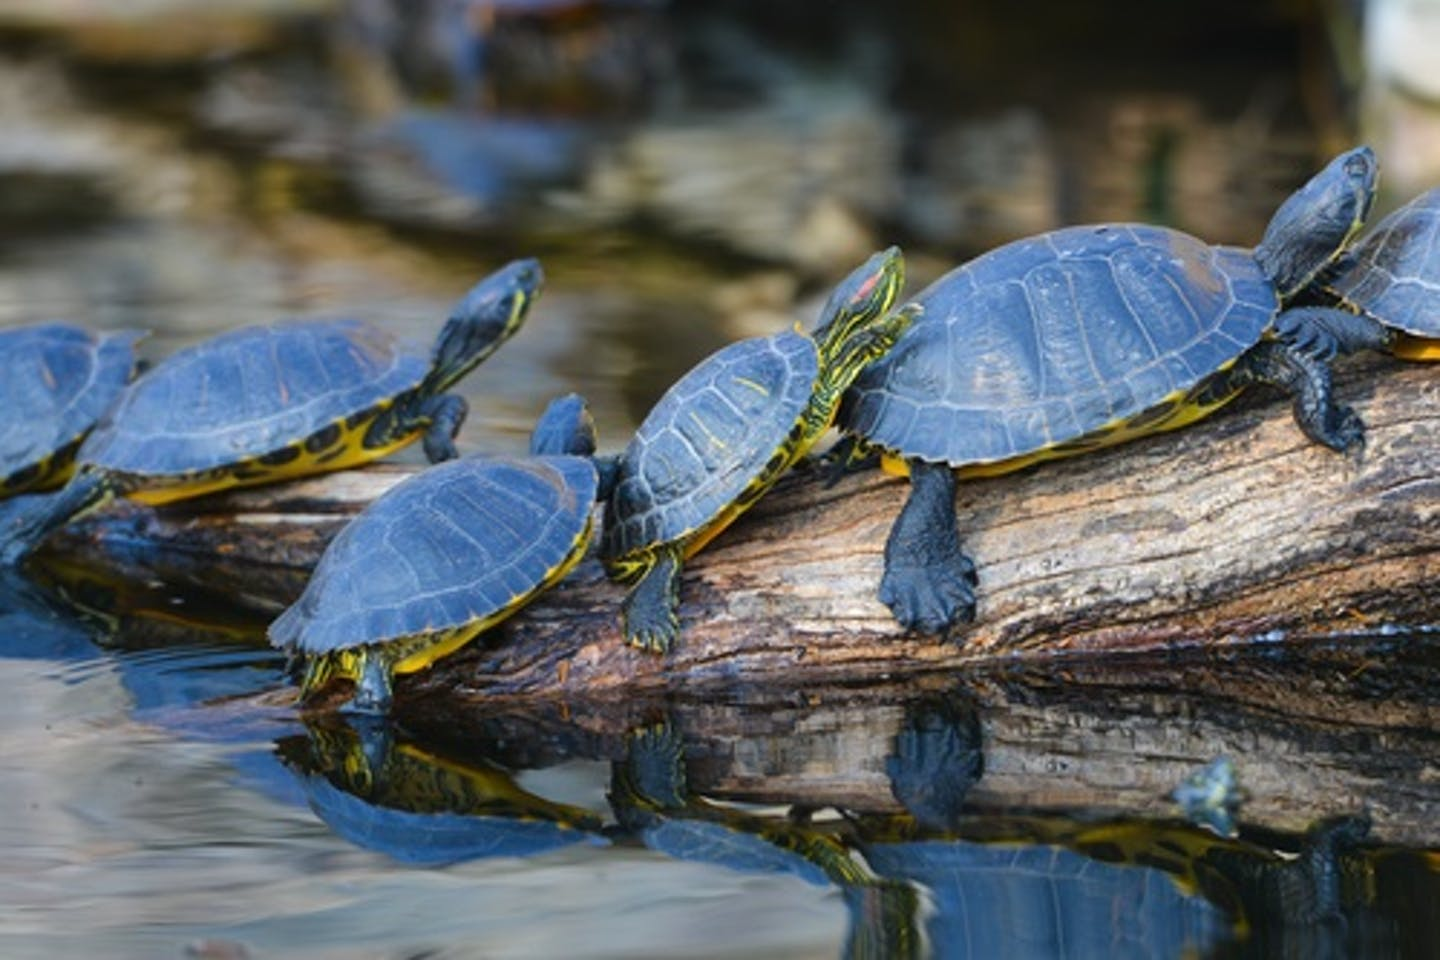 turtles ectotherms